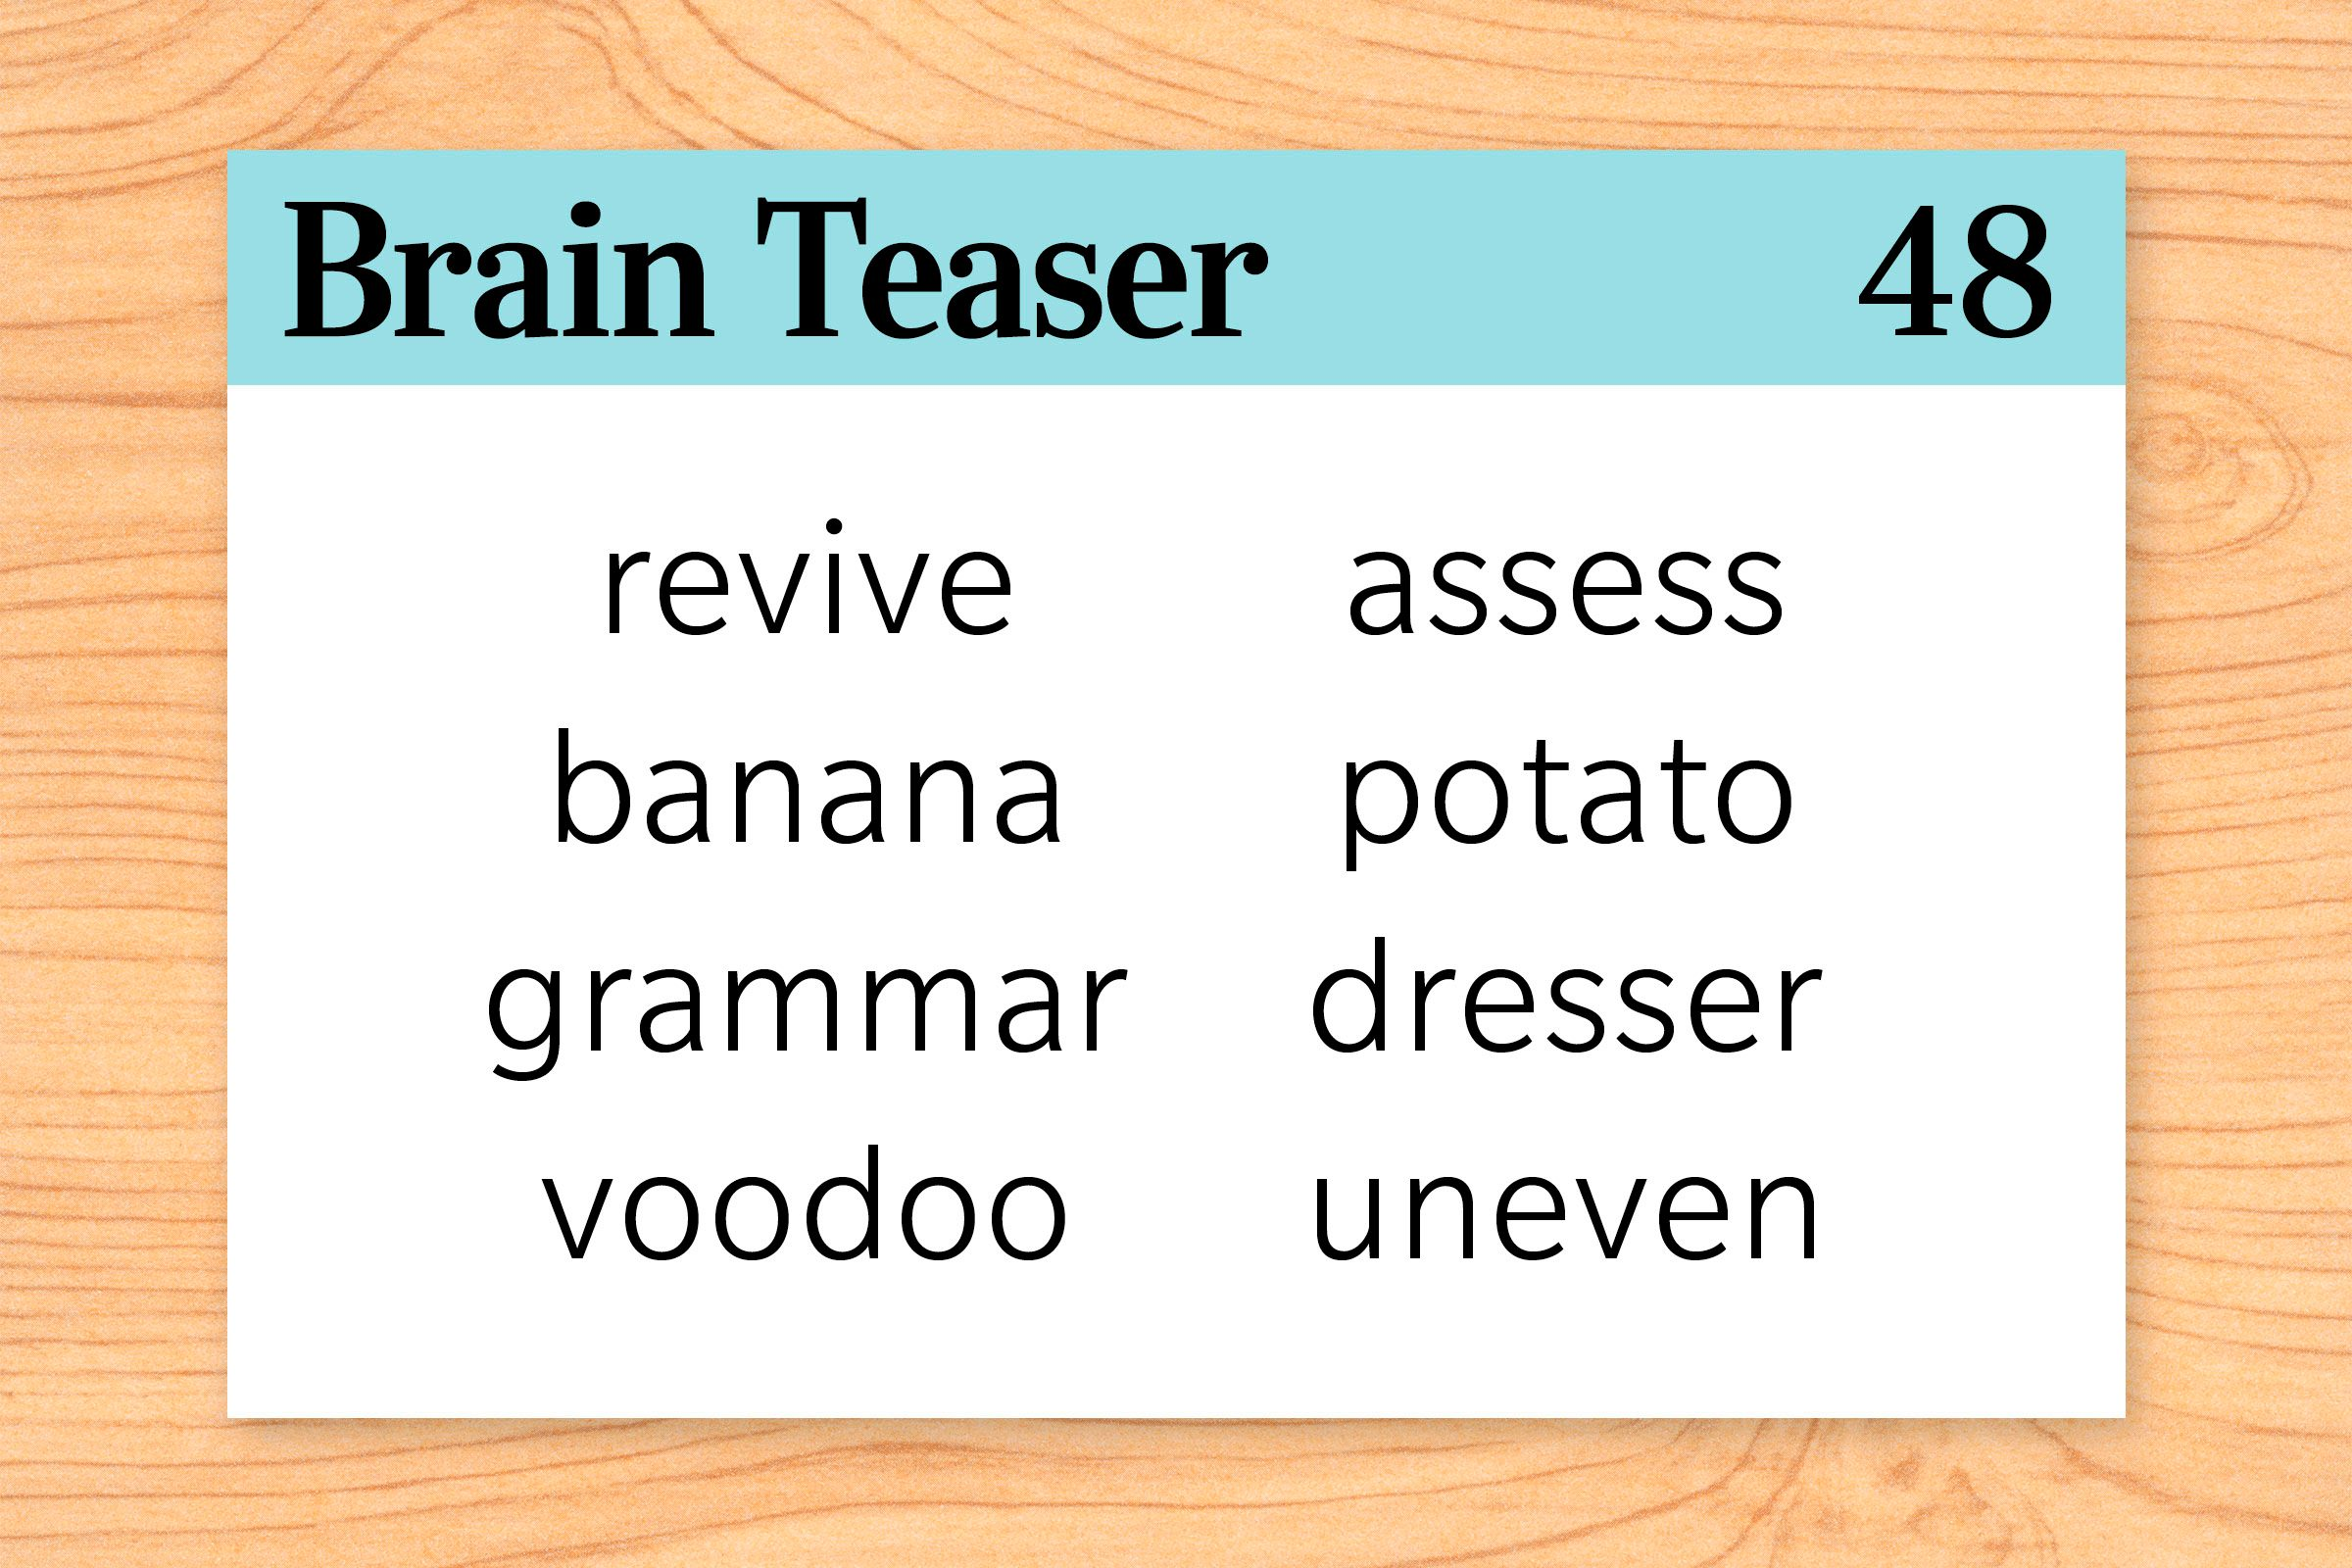 What is unusual about the following words: revive, banana, grammar, voodoo, assess, potato, dresser, uneven?